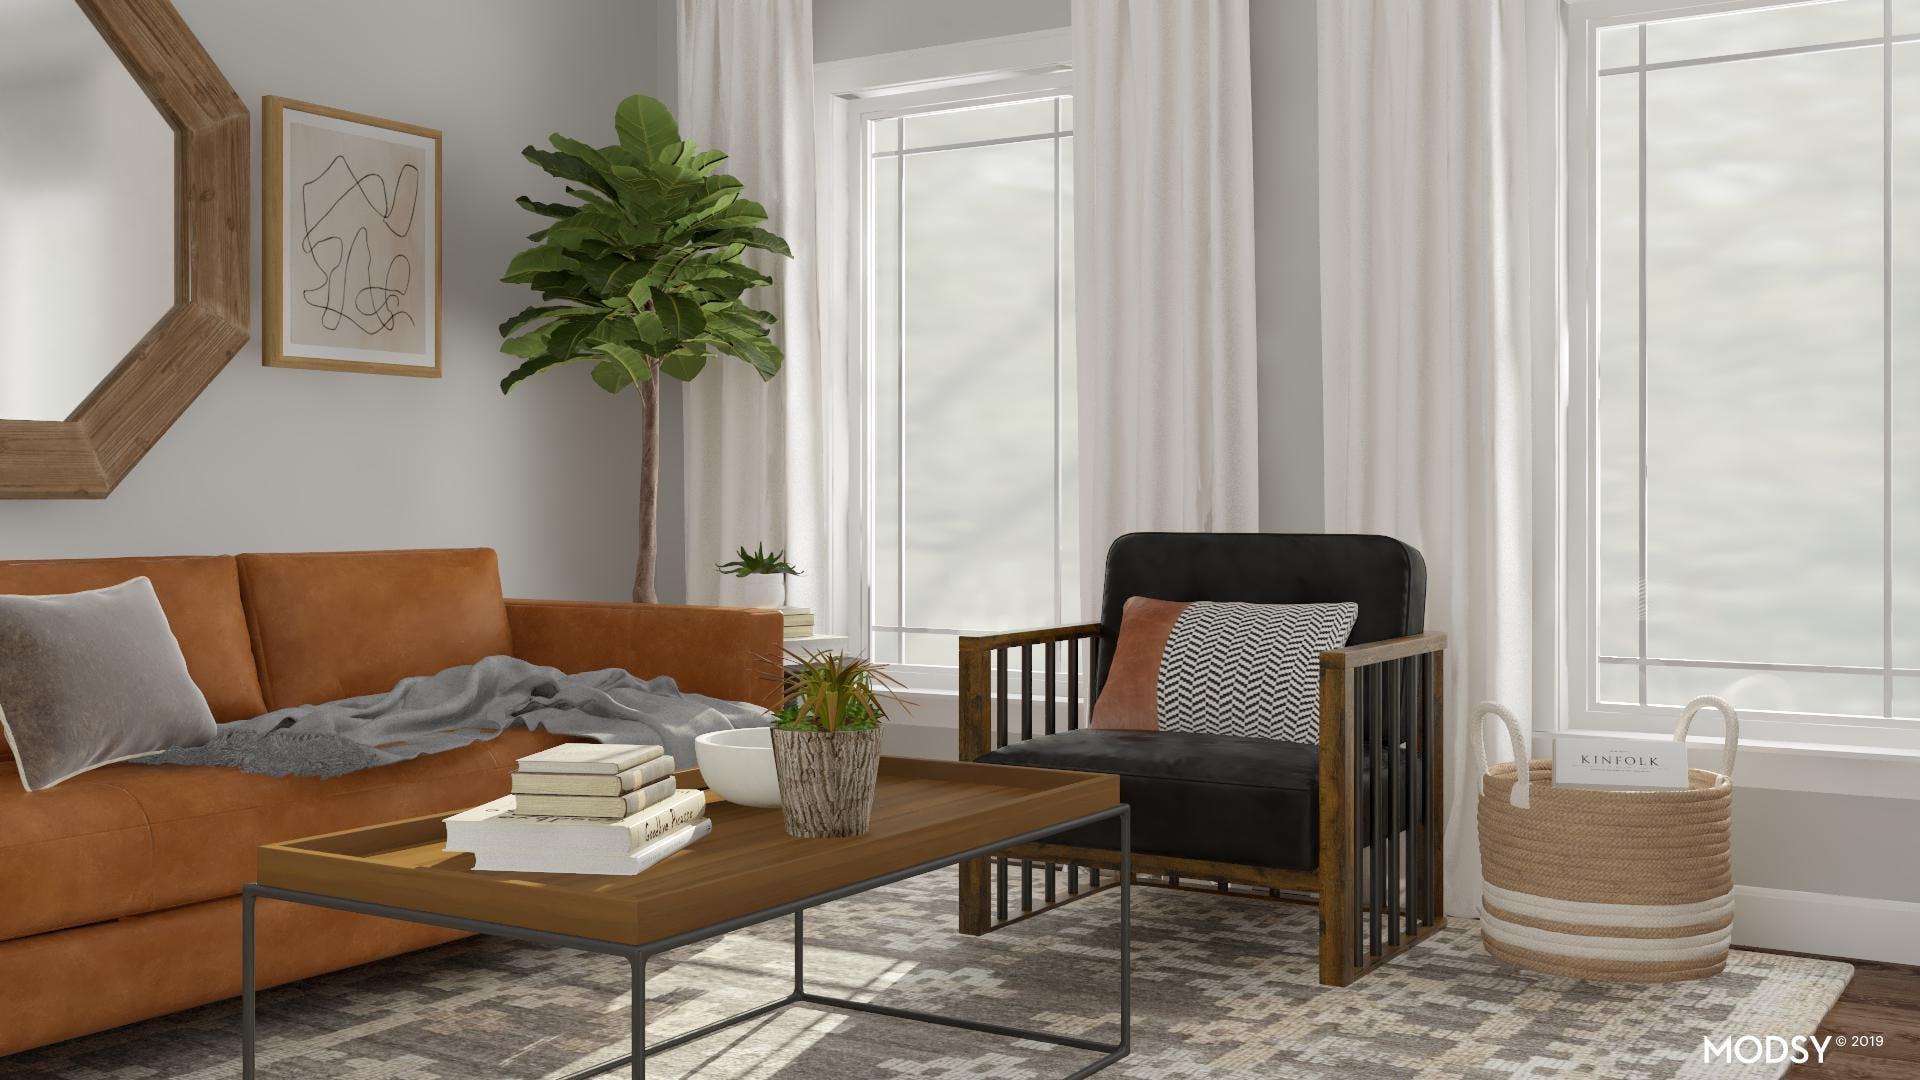 Balancing Cool Neutral Tones With Warm Accents